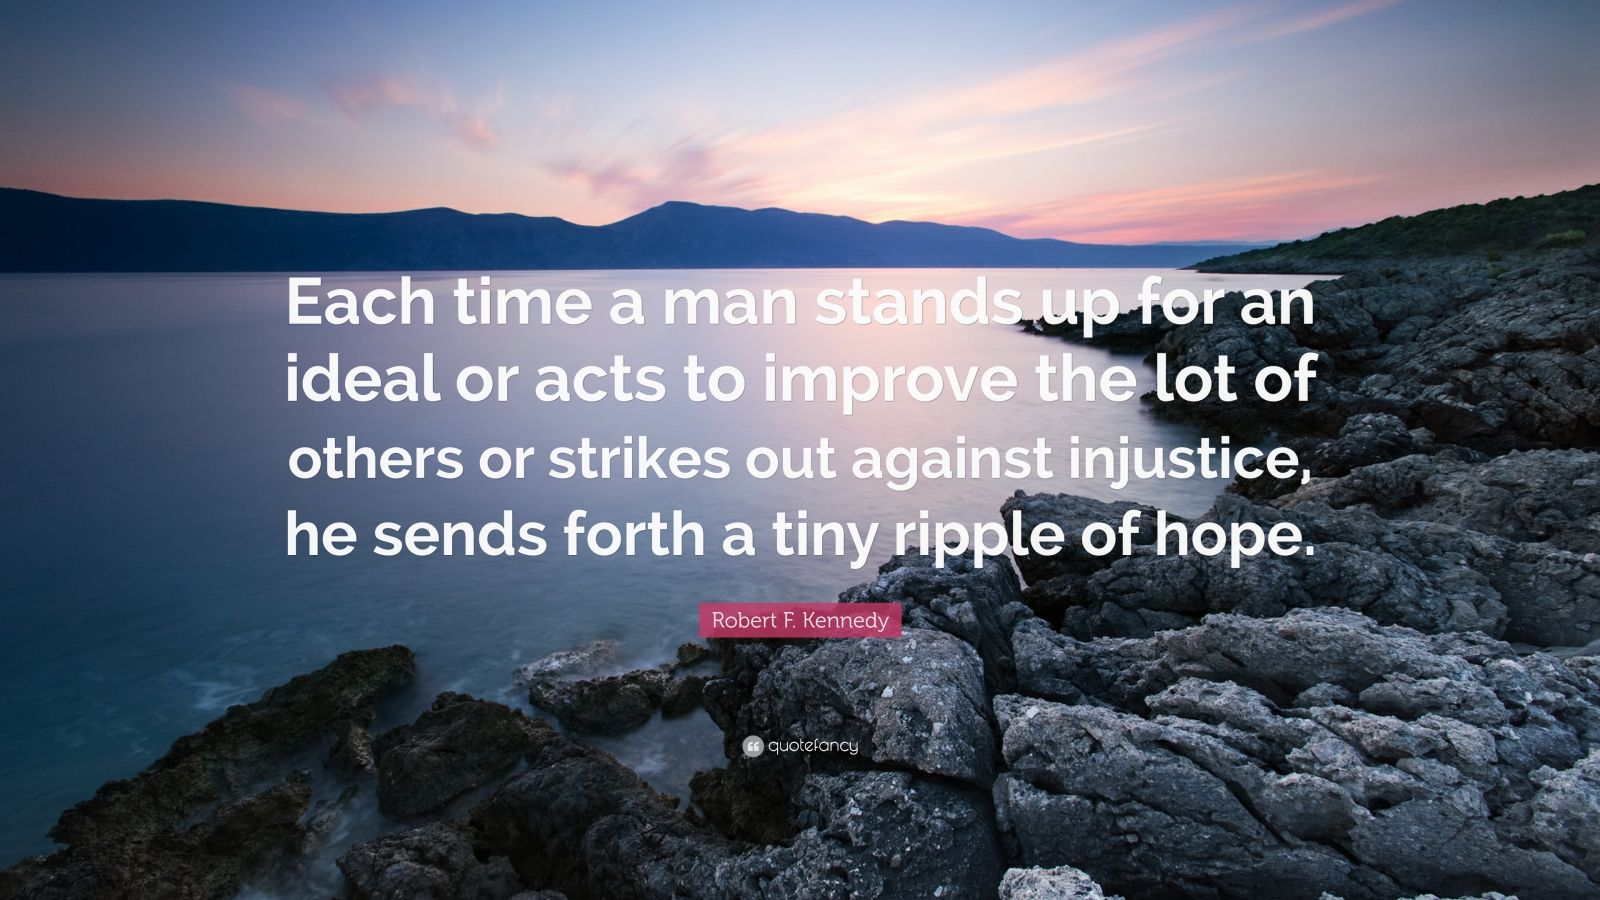 "Robert F. Kennedy Quote: ""Each time a man stands up for an ideal or acts to improve the lot of others or strikes out against injustice, he sends forth a tiny ripple of hope."""